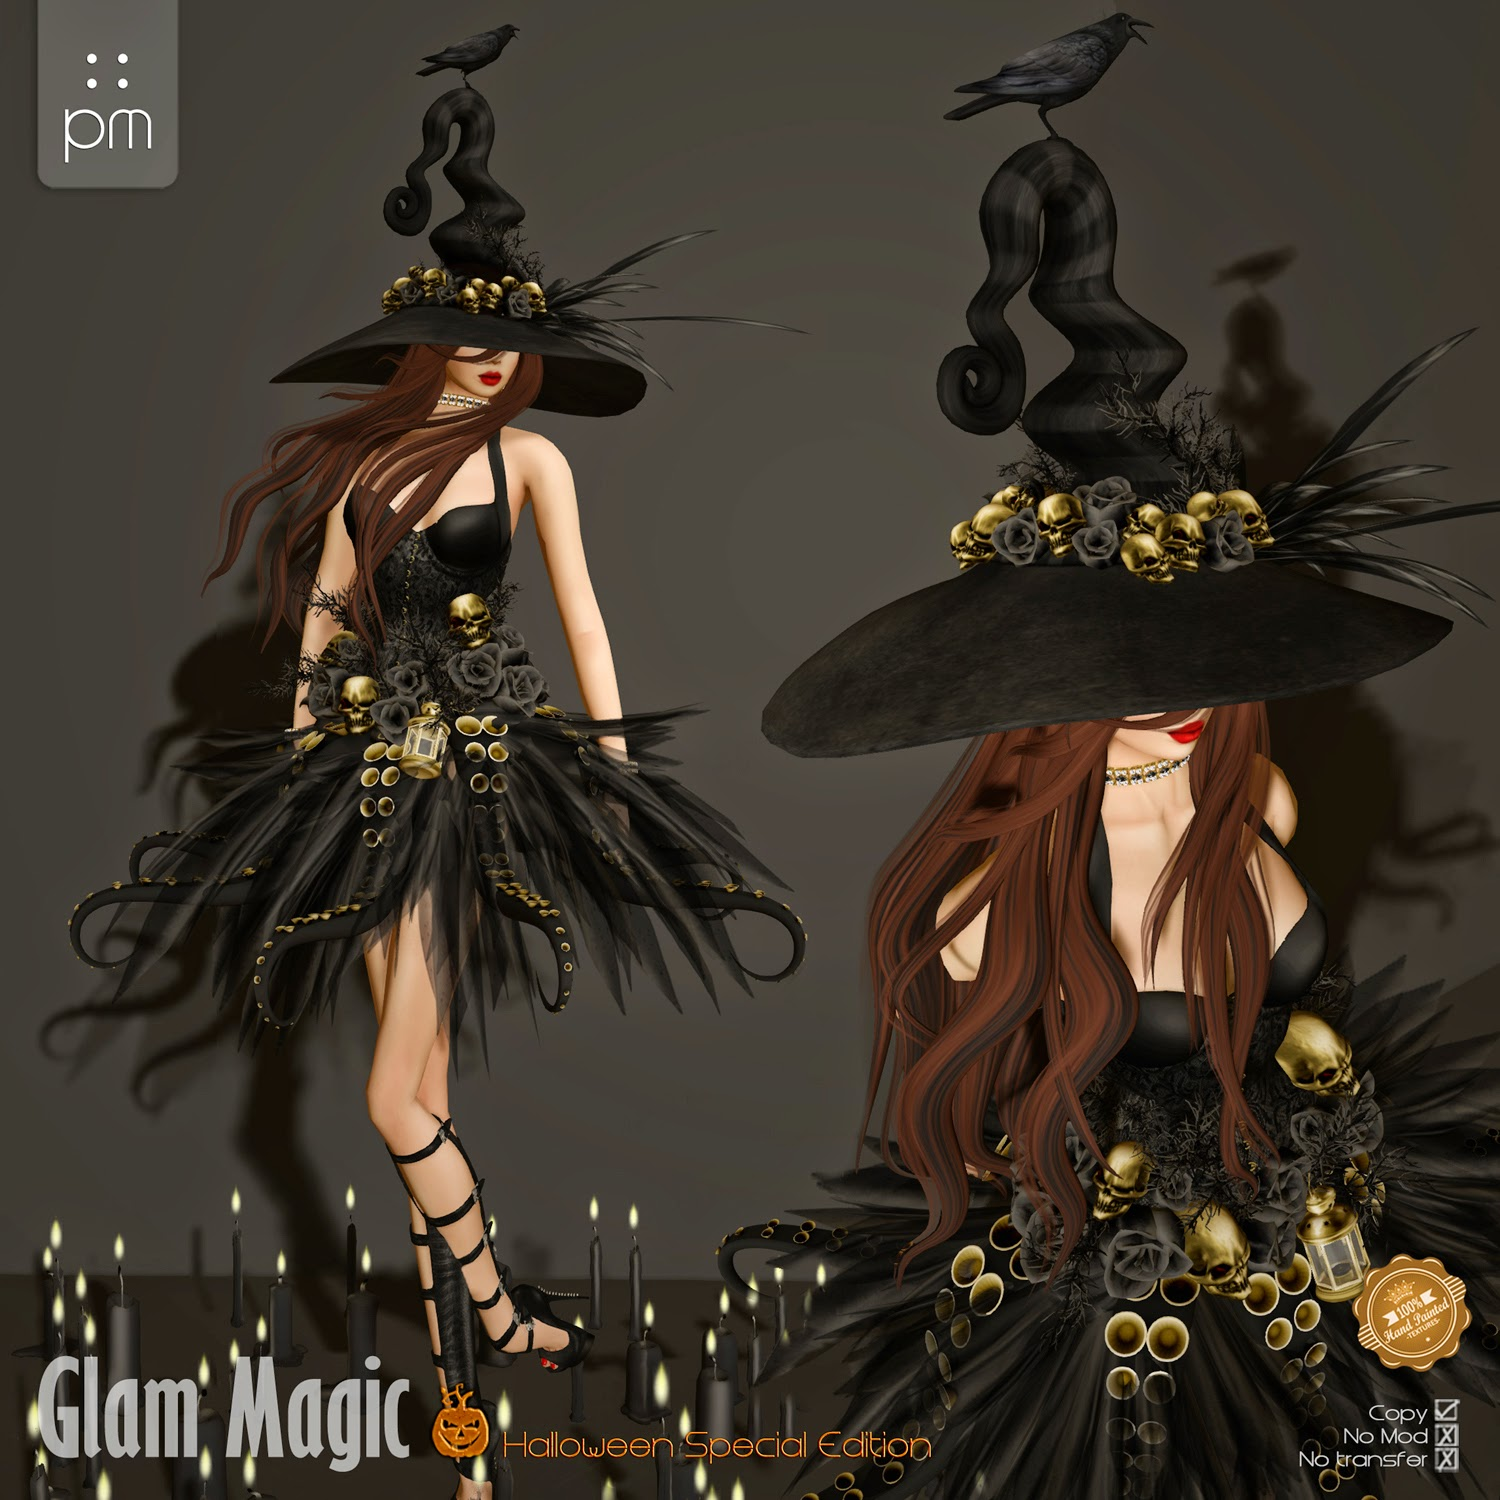 https://marketplace.secondlife.com/p/PM-Glam-Magic-Halloween-Special-Edition/6518830